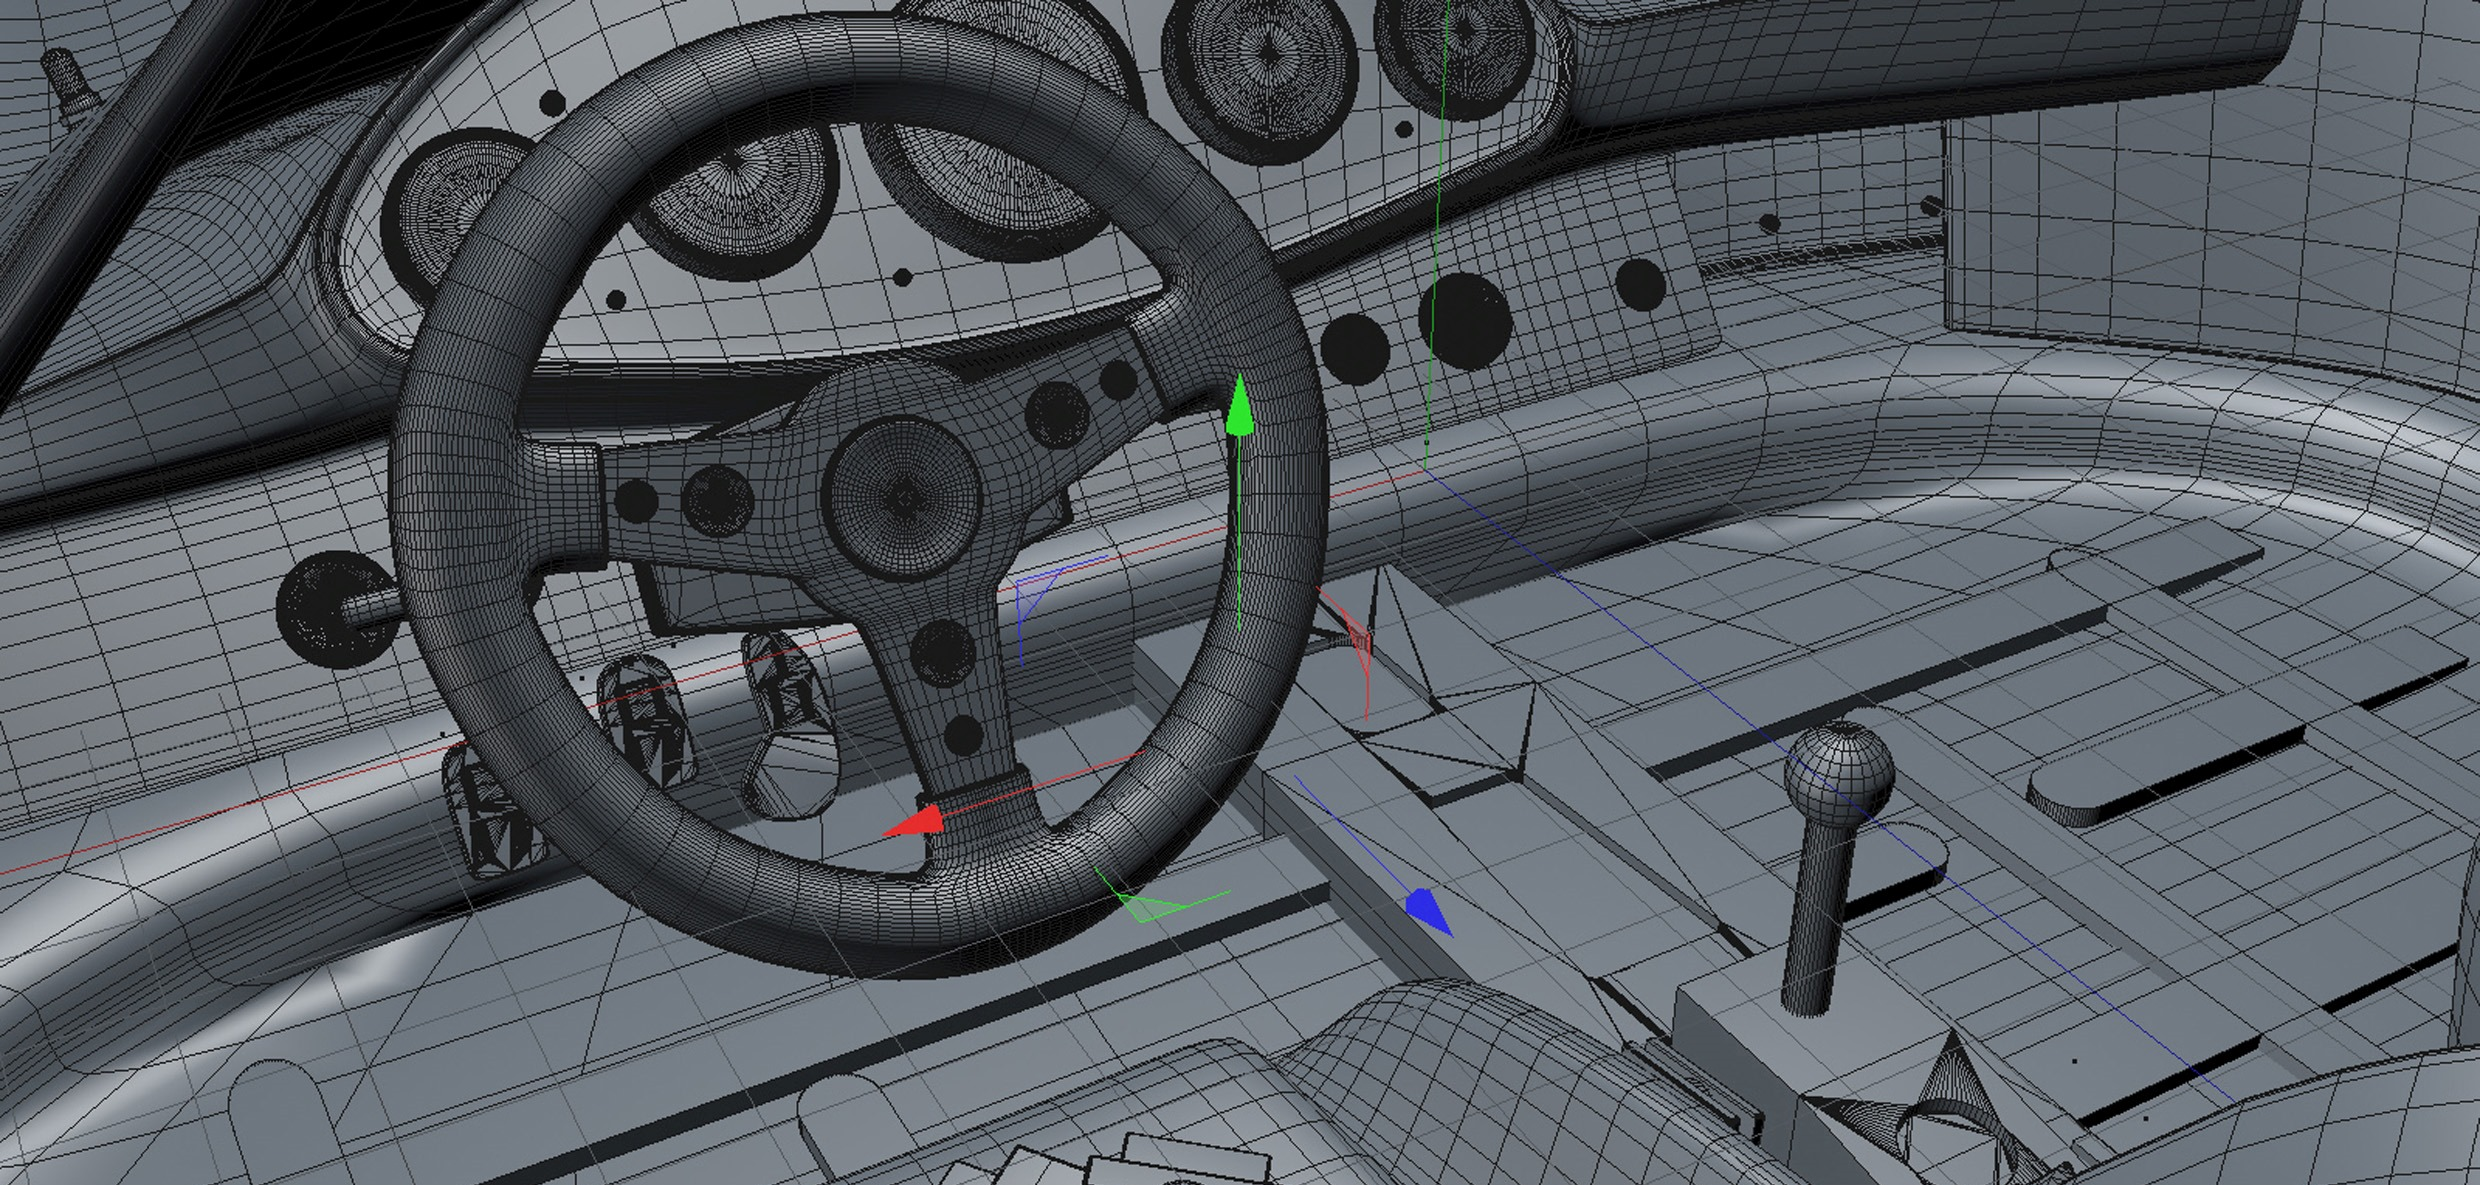 Modelling process of the car